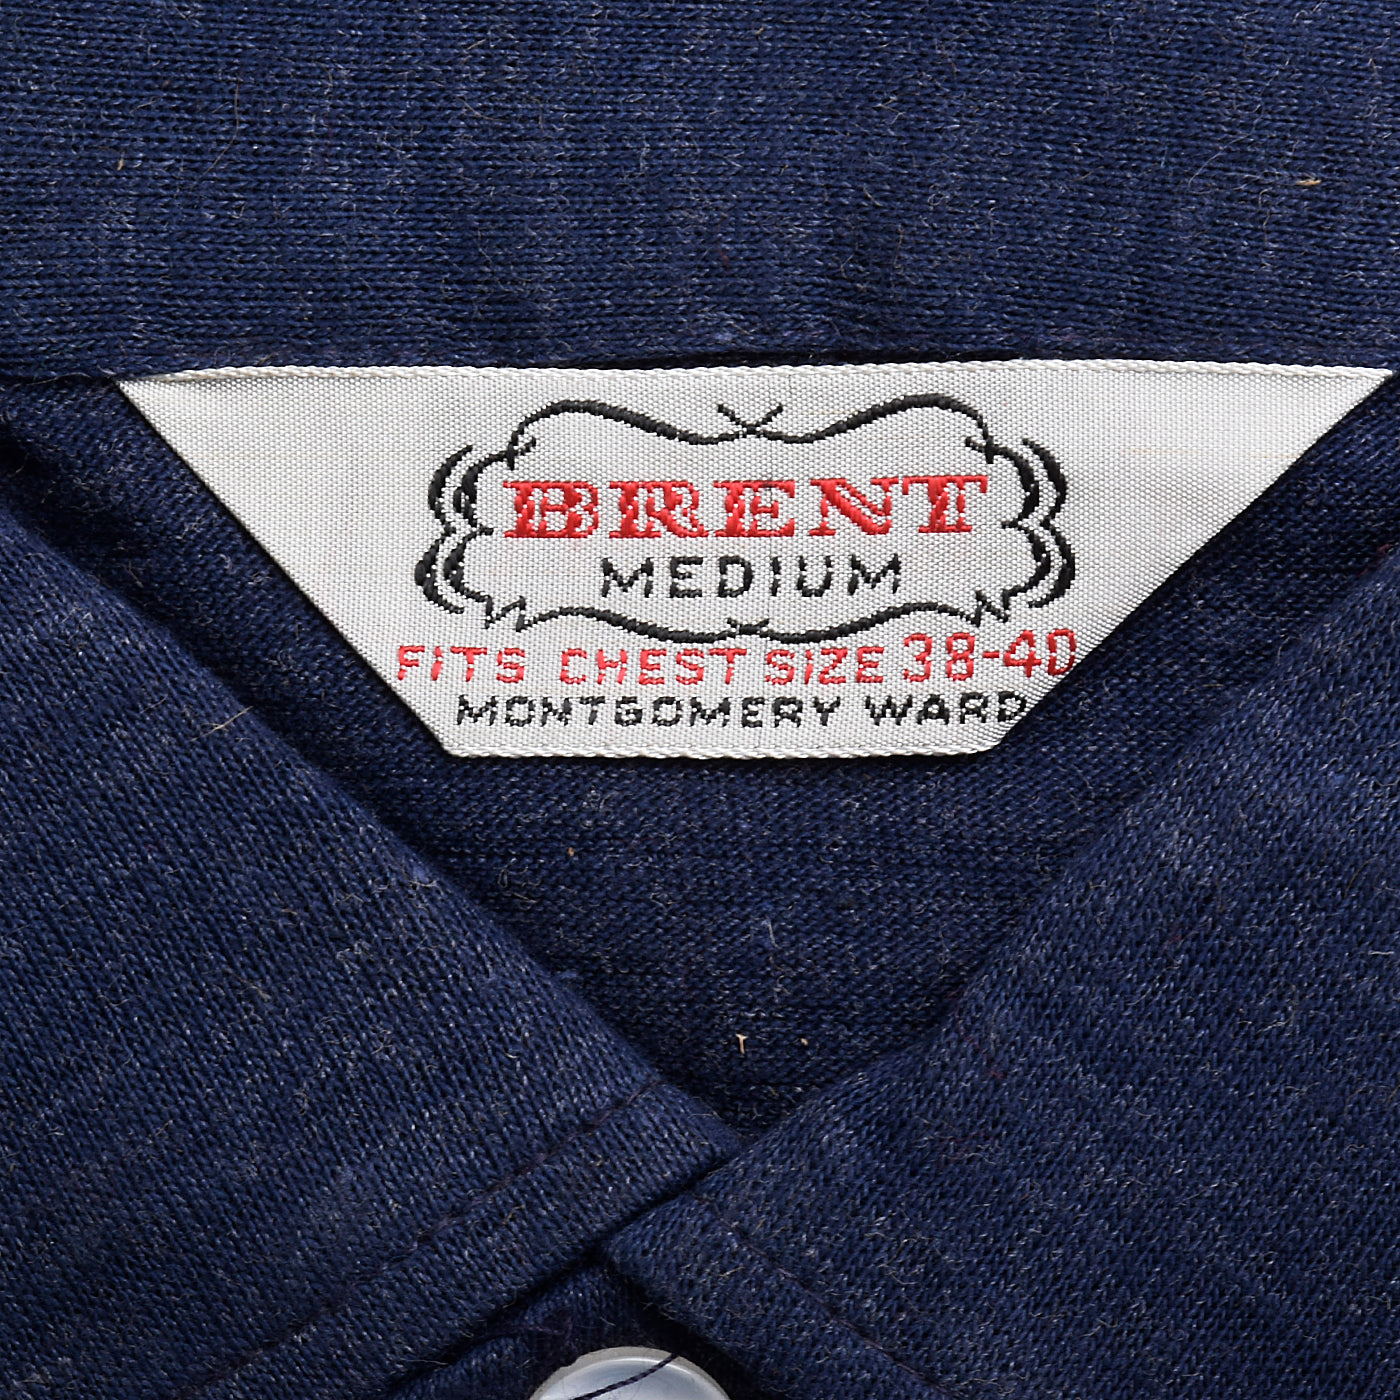 1950s Mens Deadstock Blue Knit Shirt